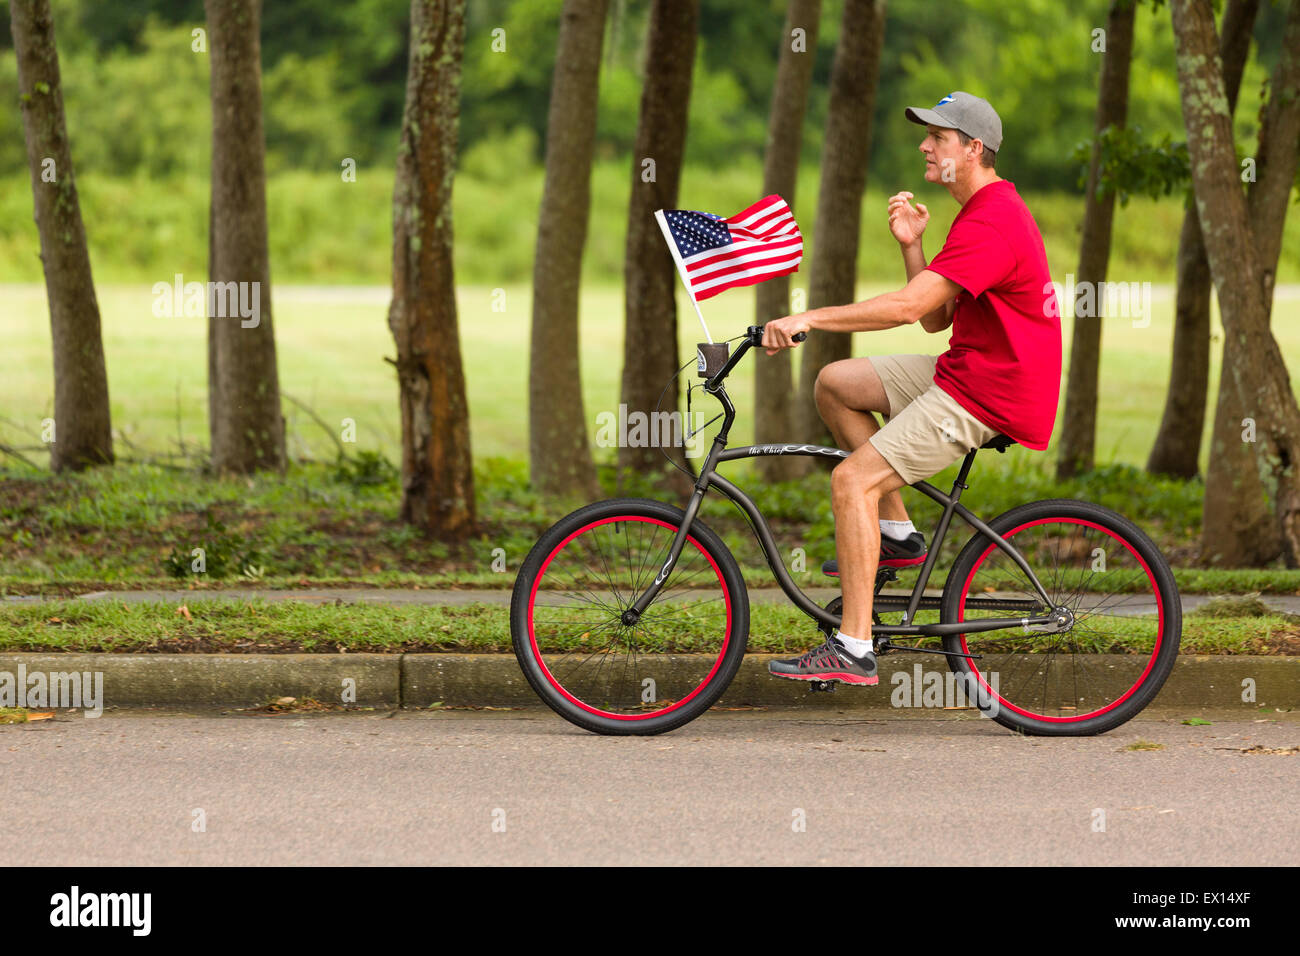 A bicyclist rides past with American flag during the Daniel Island ndependence Day parade July 3, 2015 in Charleston, - Stock Image